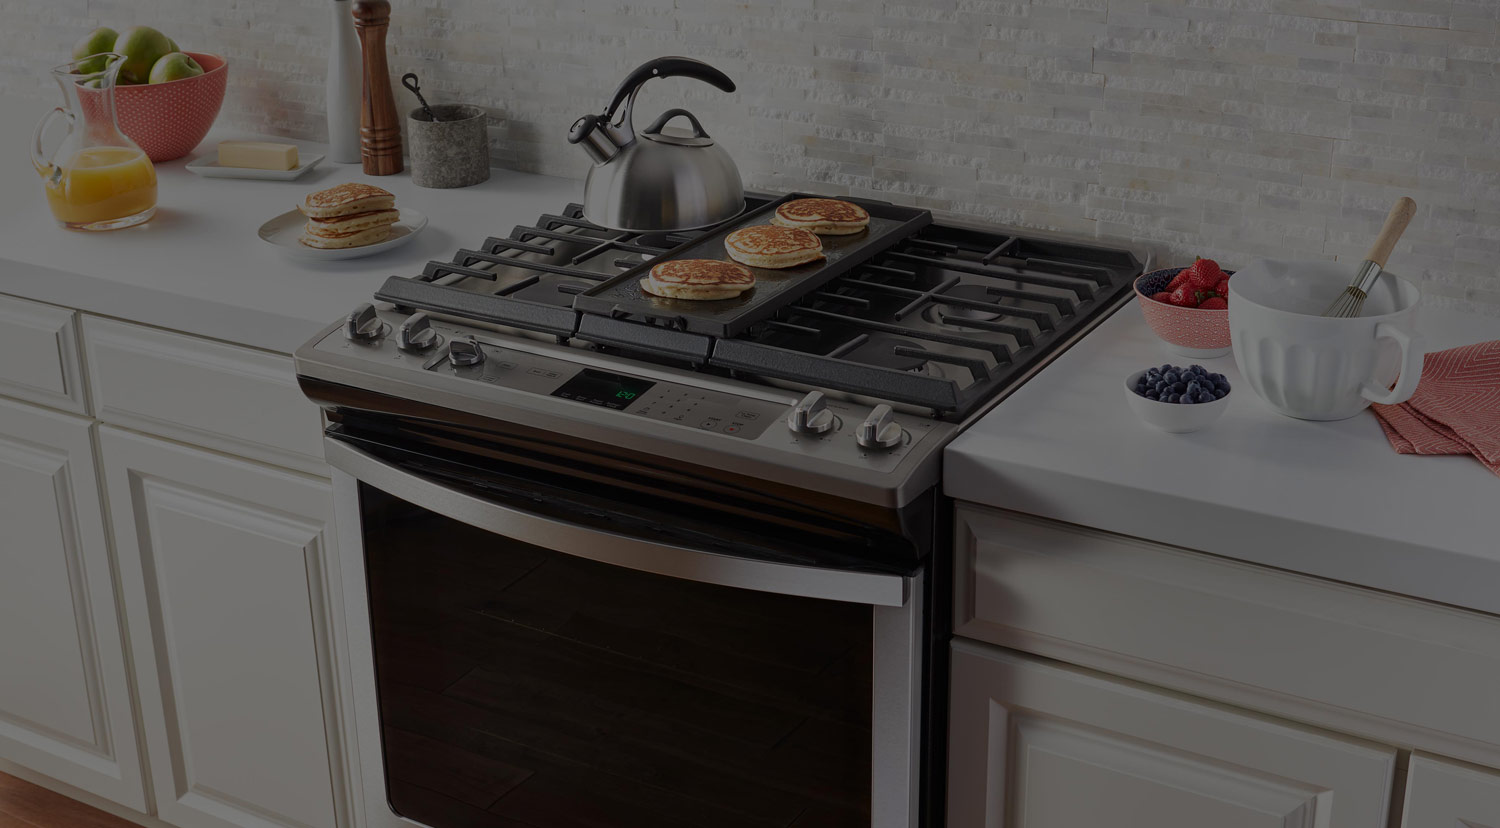 stove kitchen gourmet appliances top cooking microwaves wall ovens more kenmore in the world of